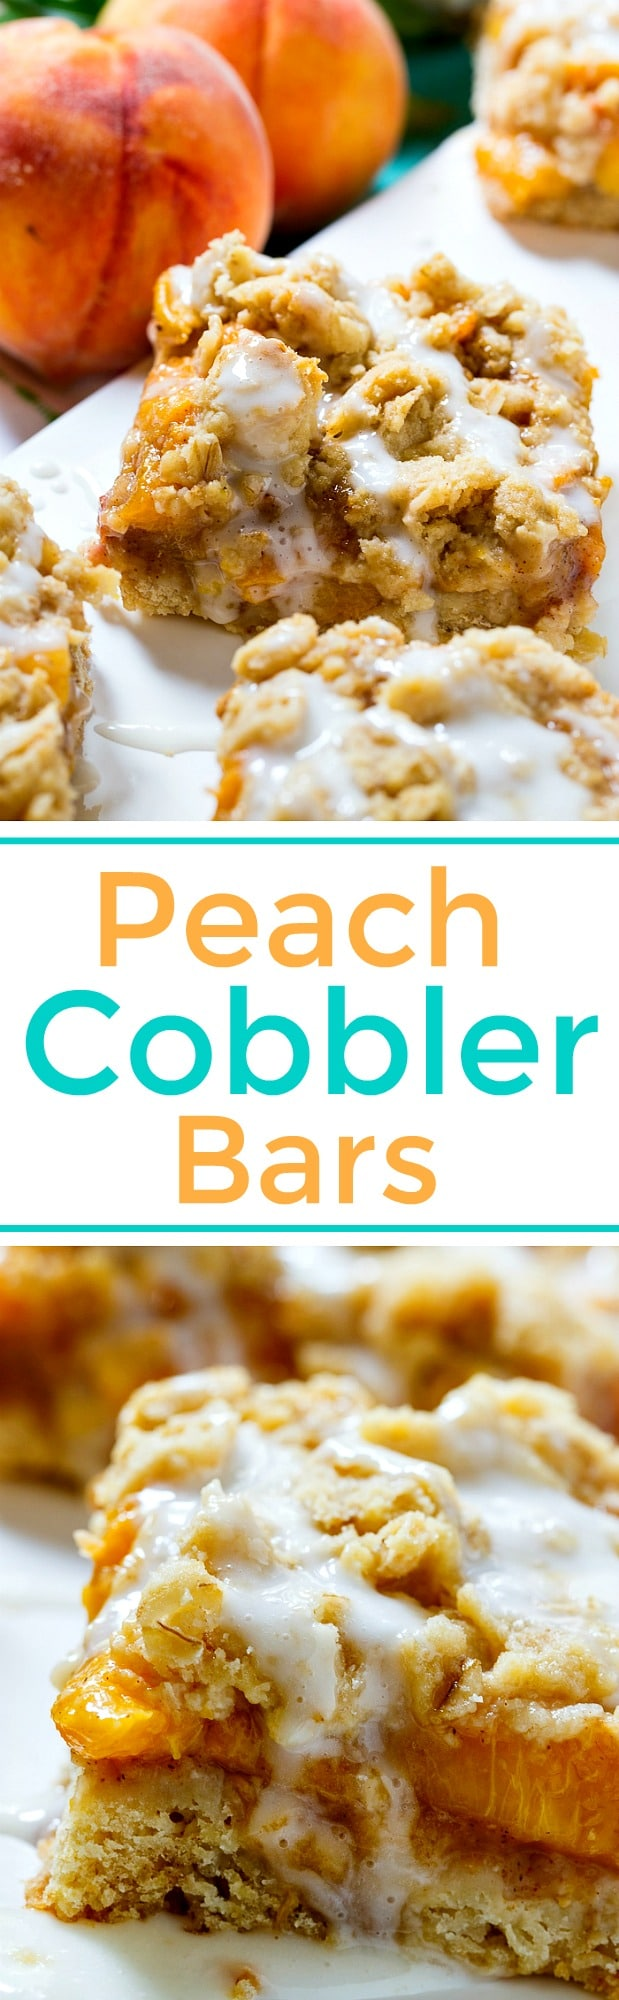 Peach Cobbler Bars made with fresh summer peaches.